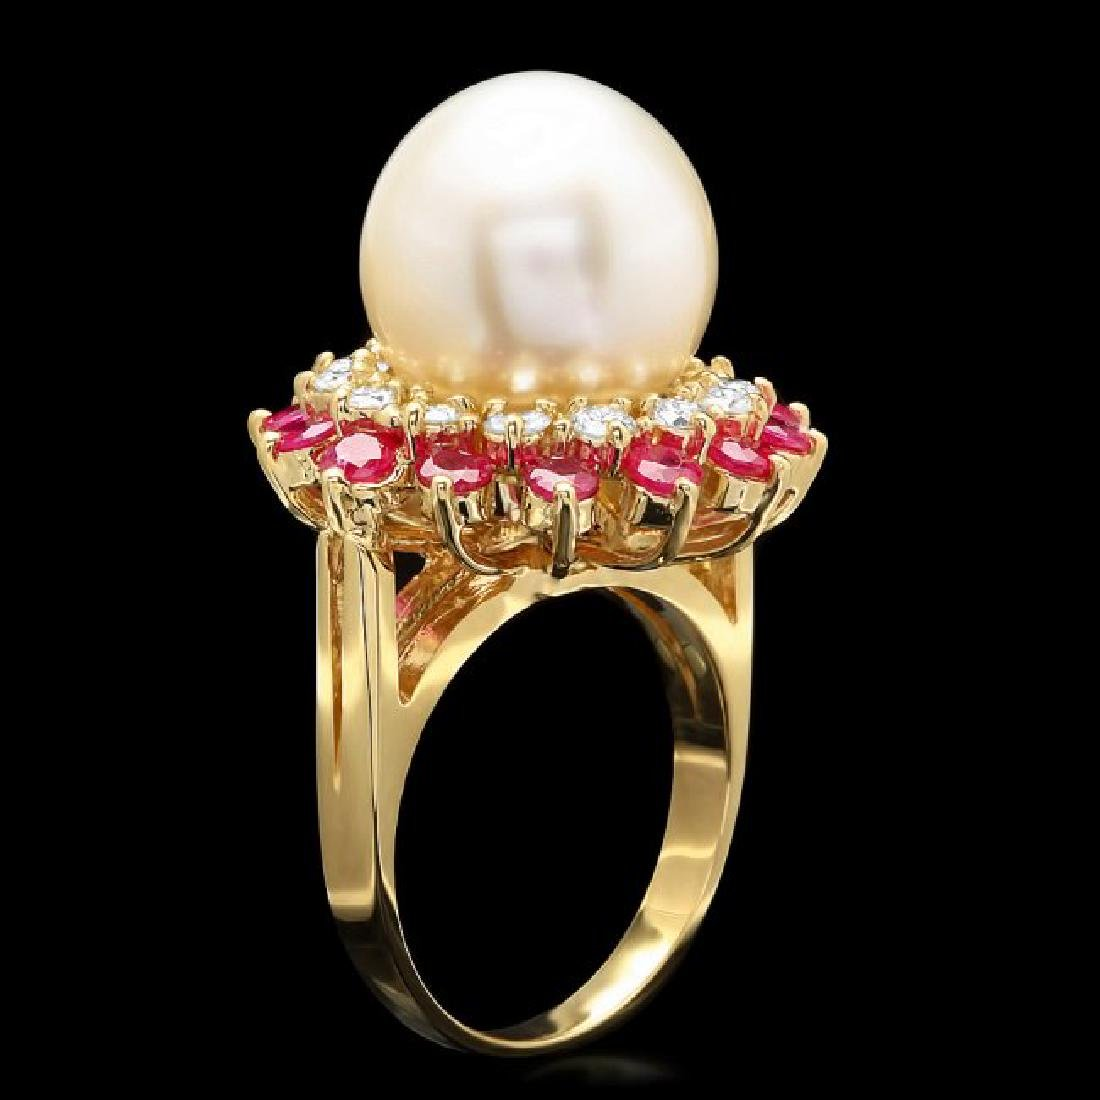 14k Gold 13 X 13mm Pearl 0.80ct Diamond Ring - 2